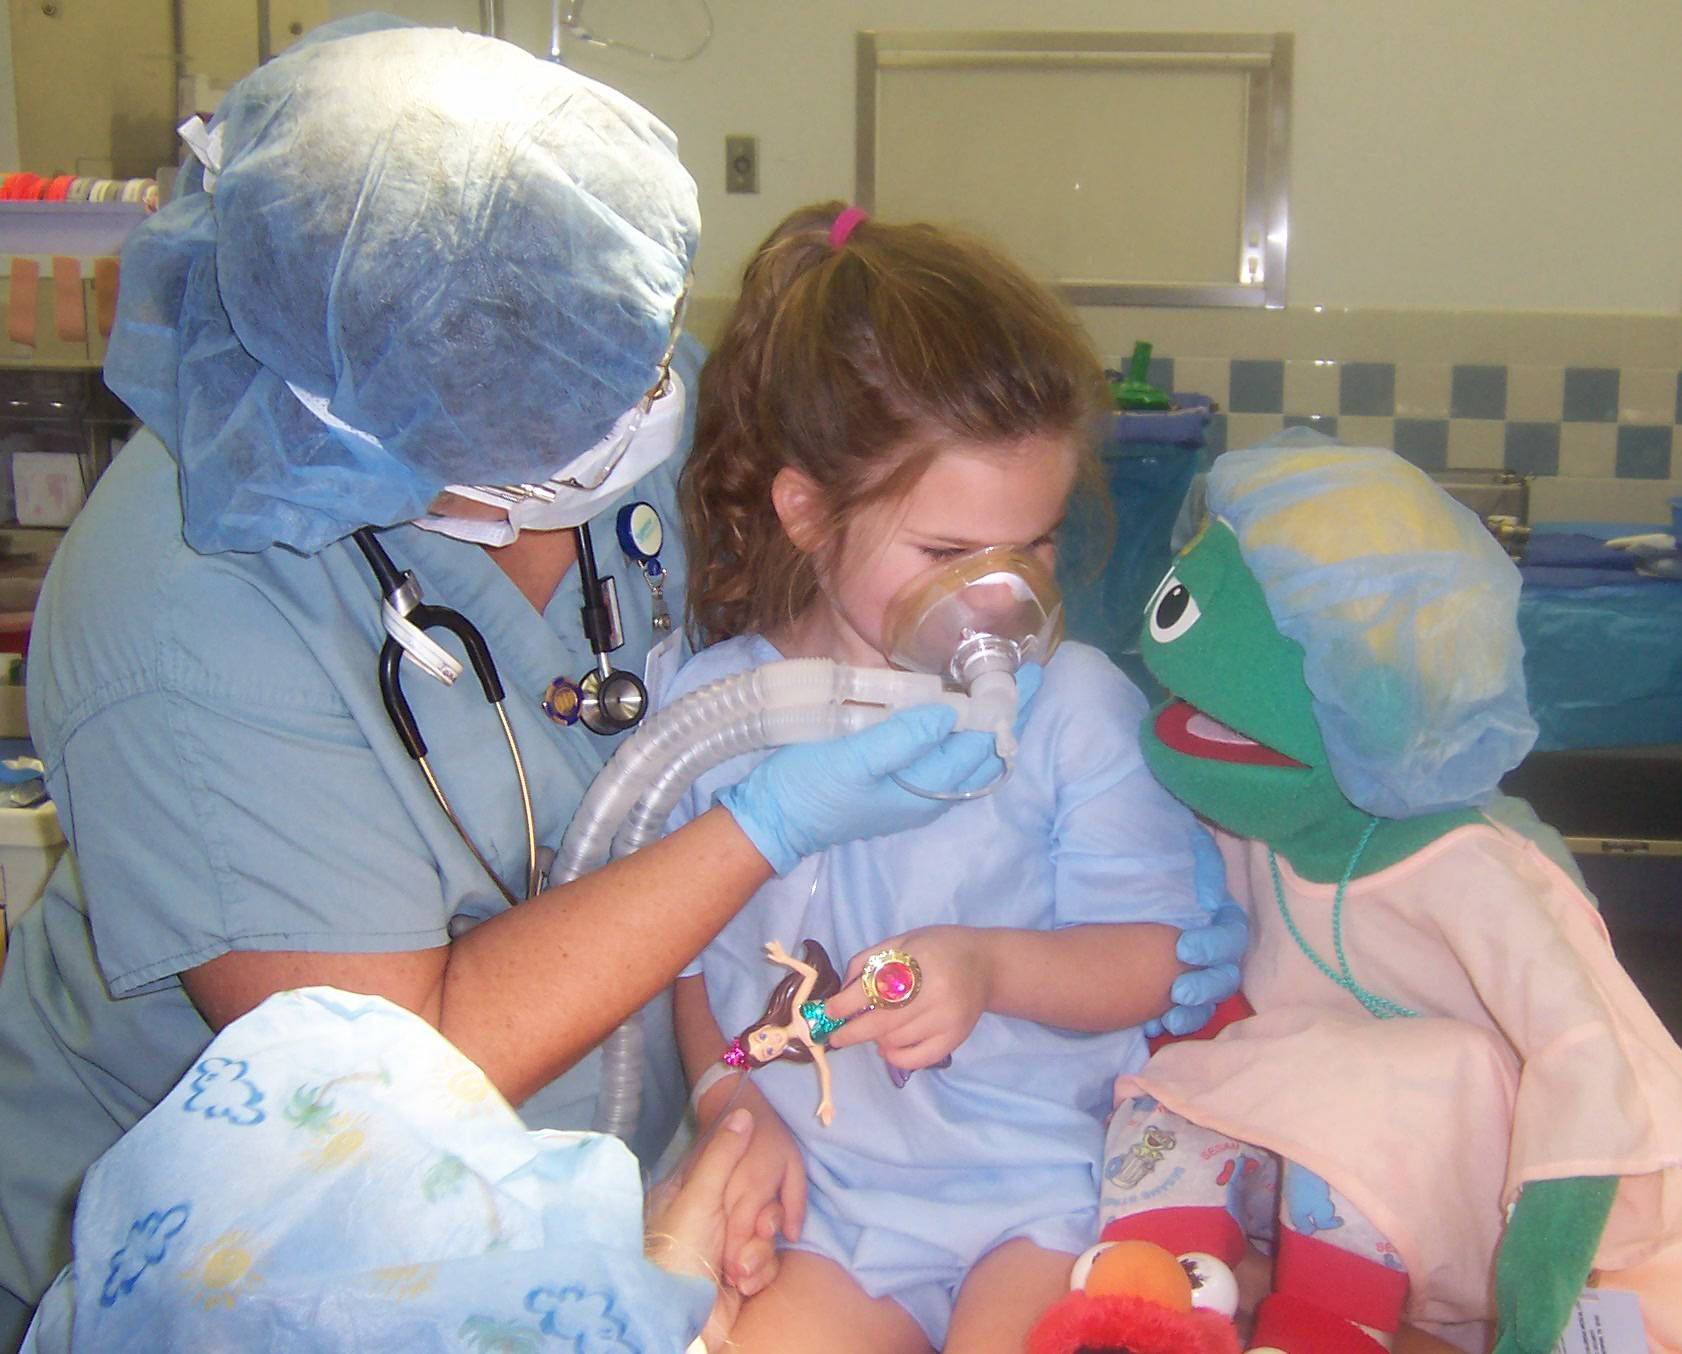 Pediatric anesthesia with Bernard the Hospital Puppet. (find out about more innovative ways to use puppets at wppuppet.com)